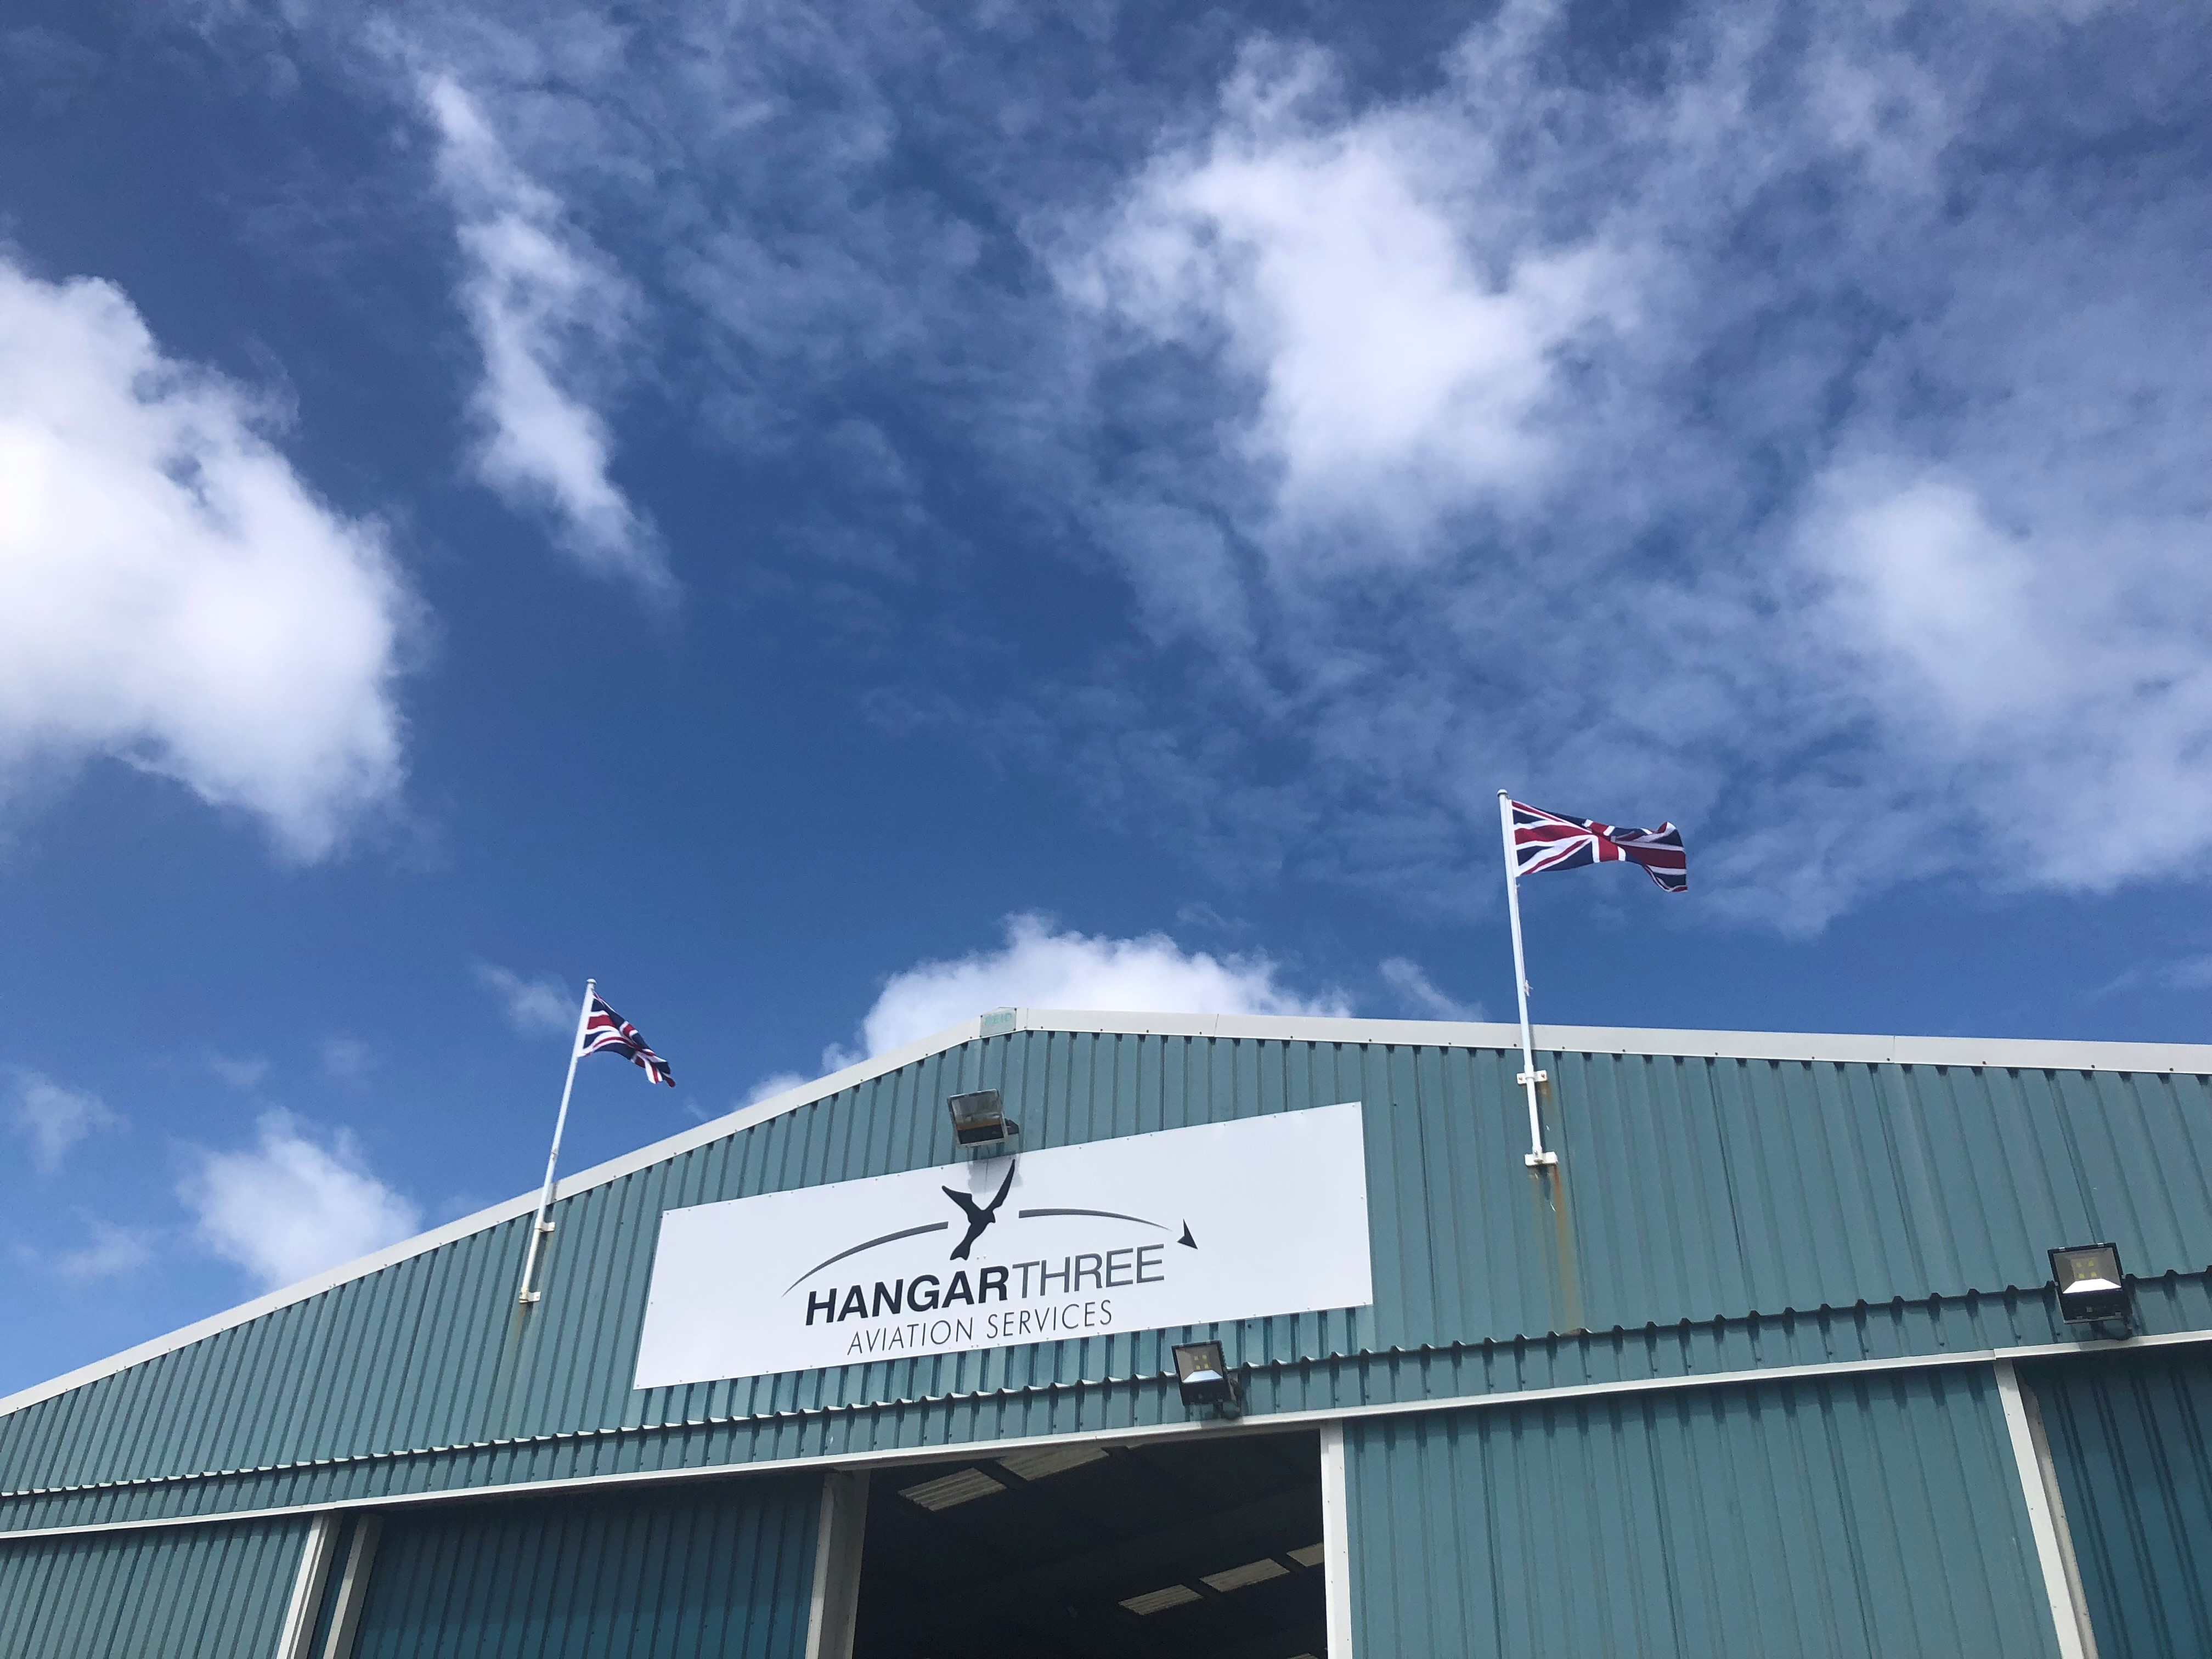 Covid 19 PCR Tests with Hangar 3 at Blackpool Airport